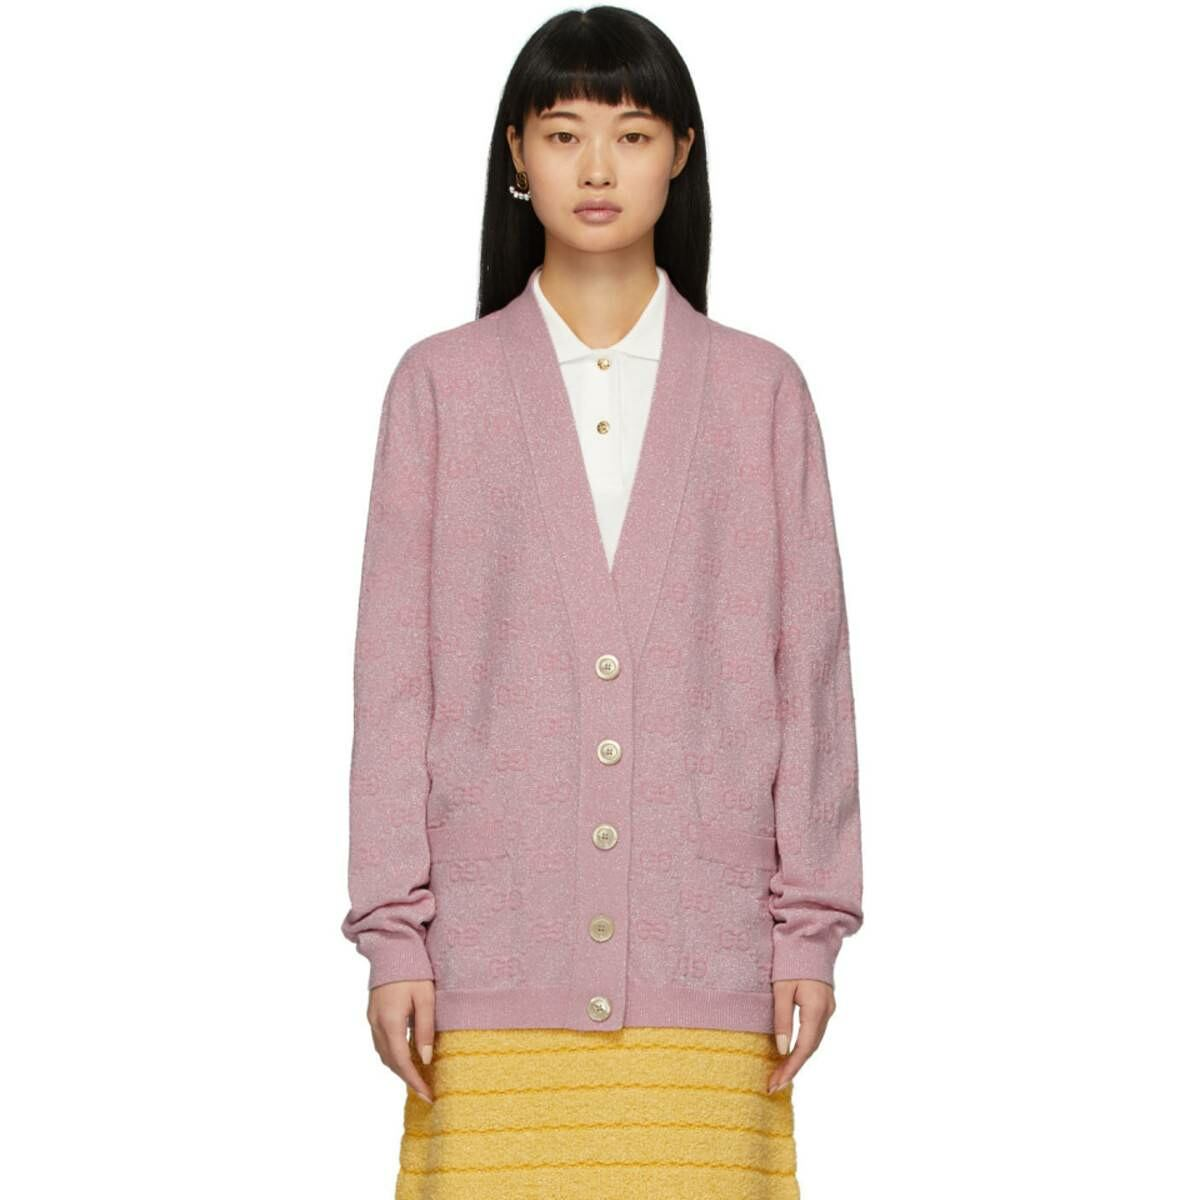 Gucci Pink Lurex Interlocking G Cardigan Ssense USA WOMEN Women FASHION Womens KNITWEAR